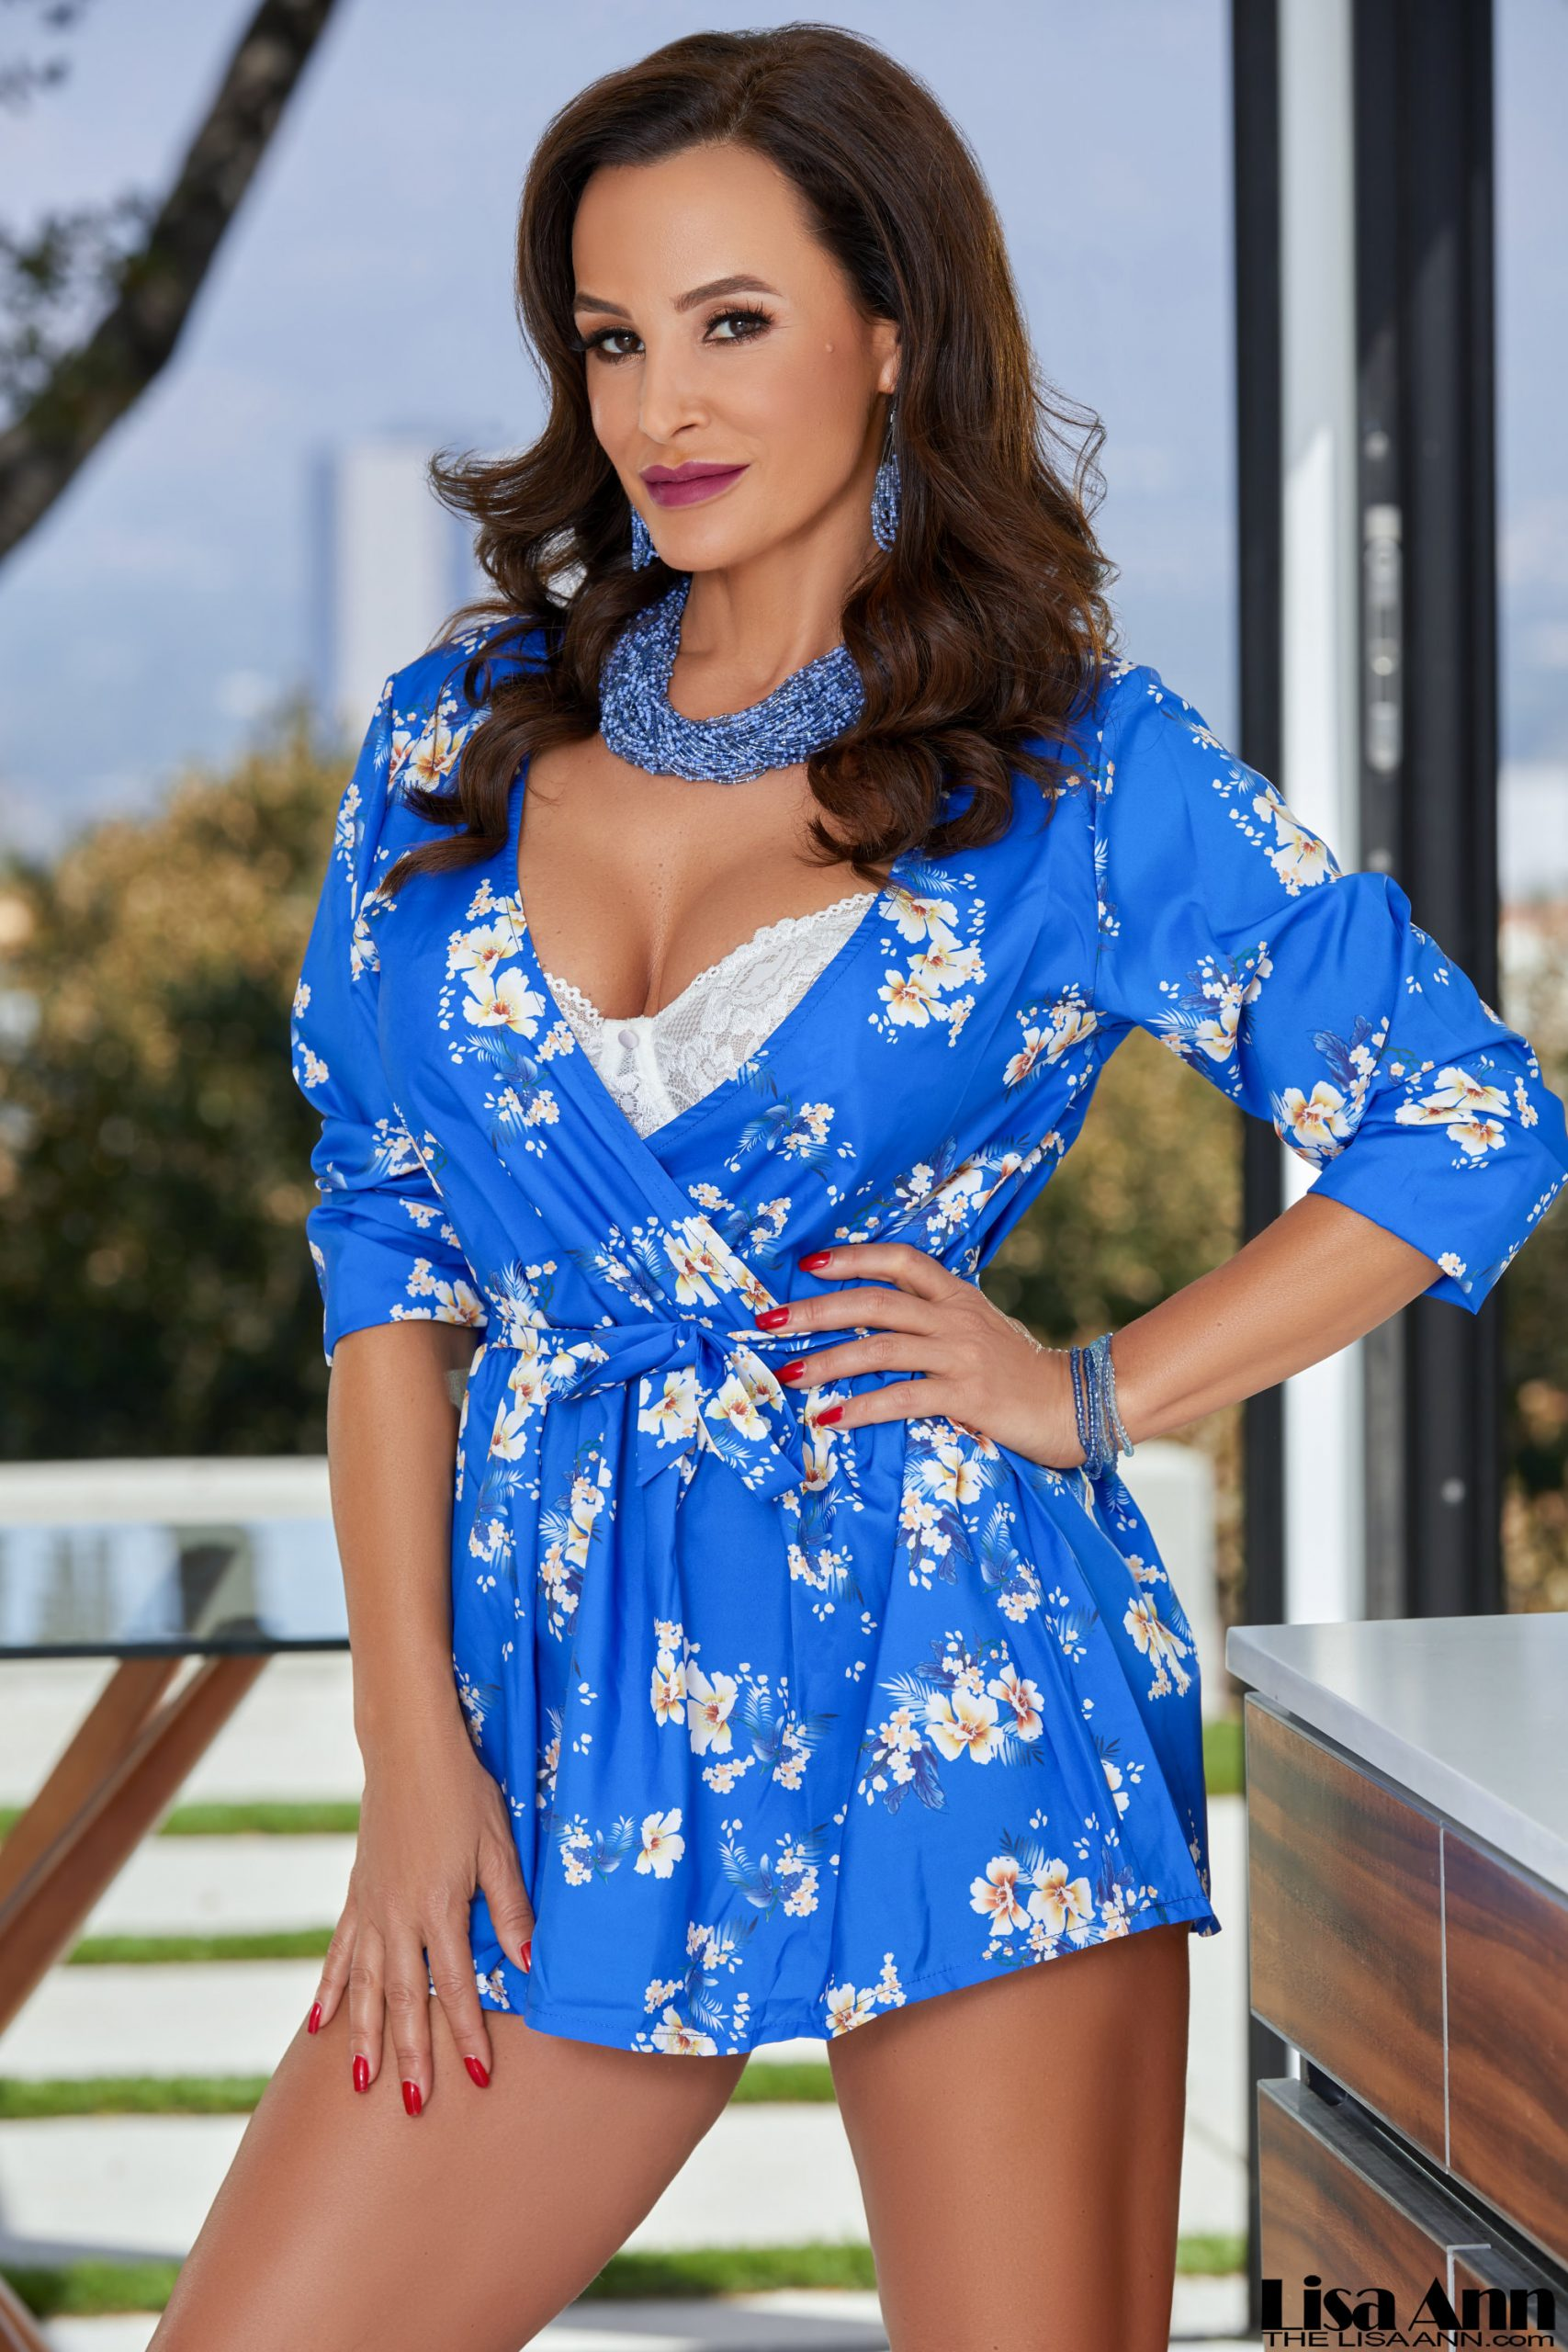 Lisa Ann Big Tits in Silky Blue Minidress